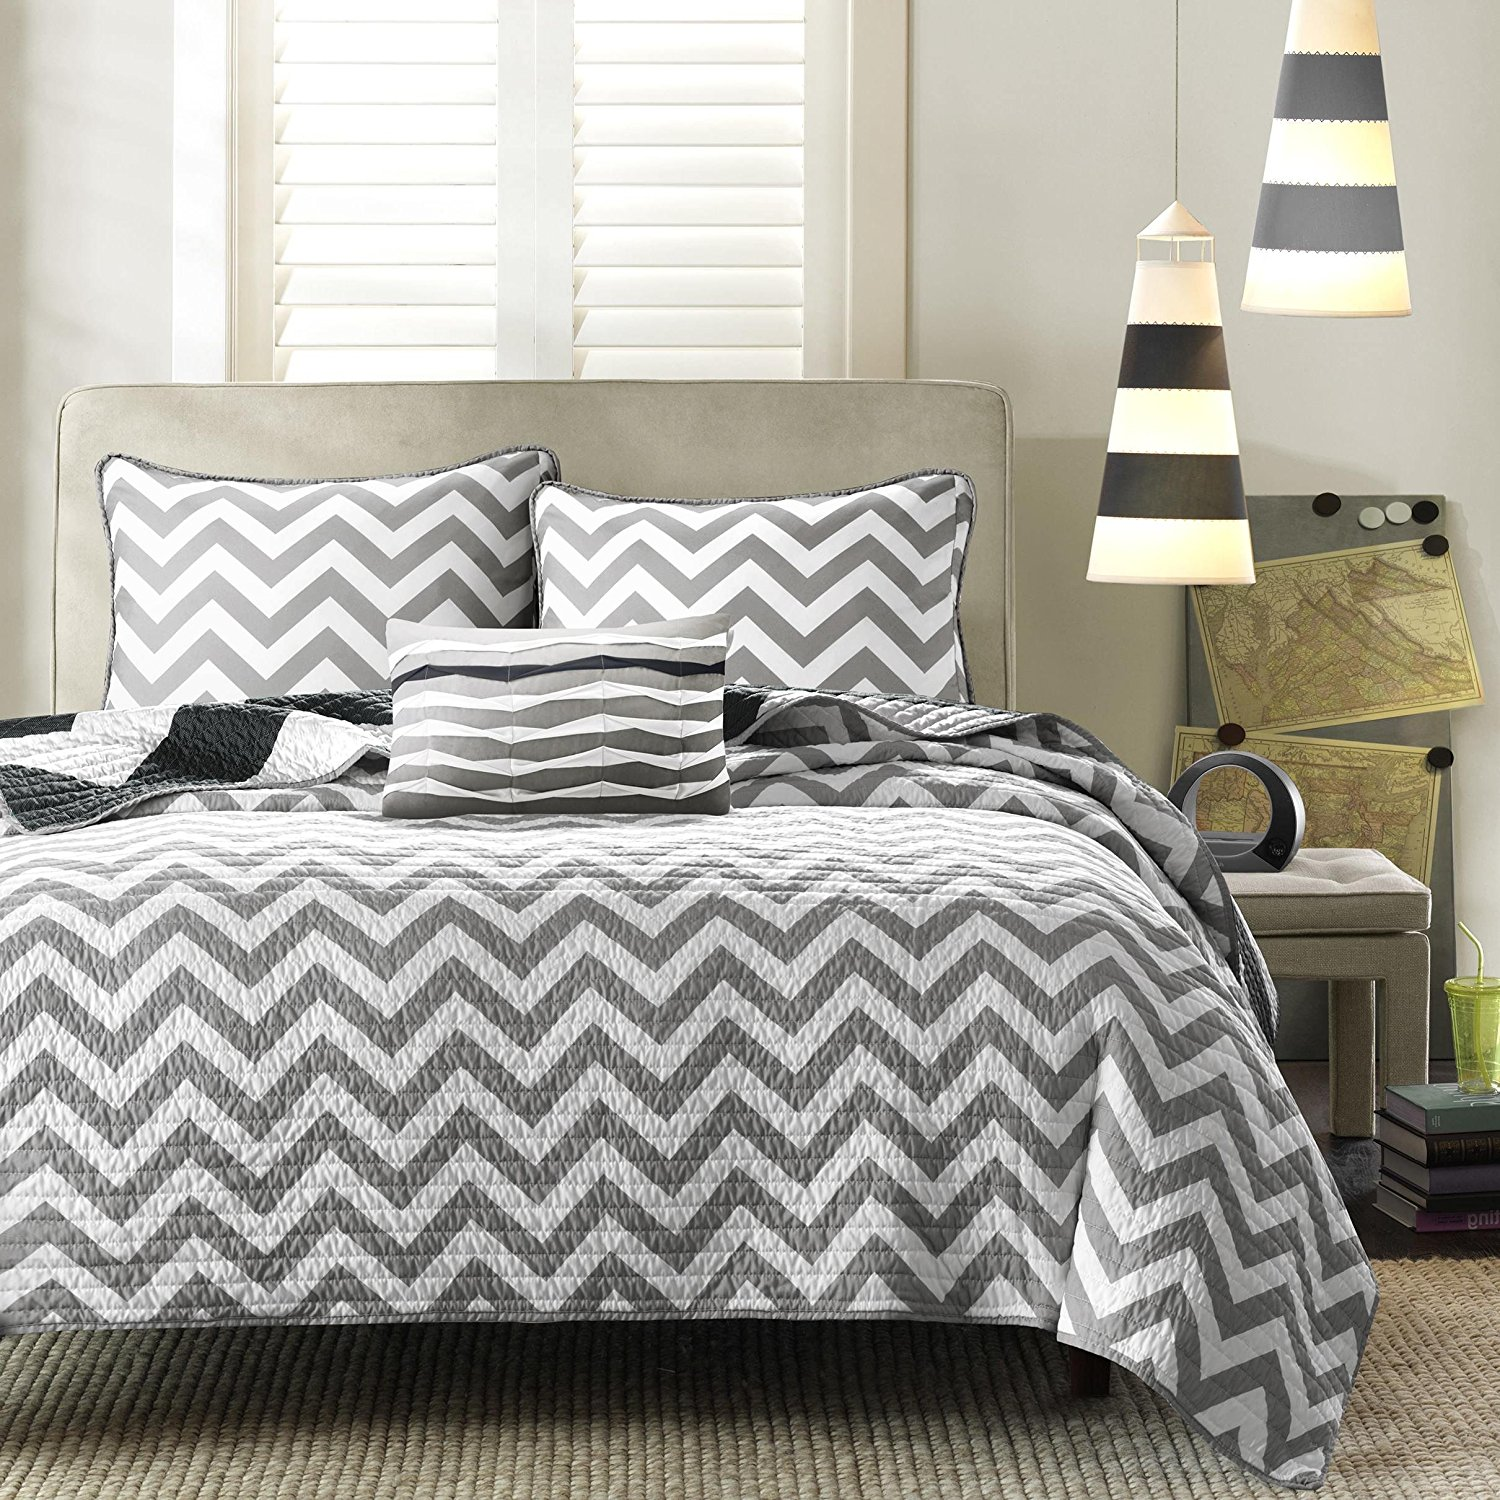 F&W 3 Piece Beautiful Black White Twin Quilt Set, Chevron Pattern Themed Reversible Bedding Zig Zag Chic Geometric Trendy Modern Grey Contemporary Vibrant Stylish Bold, Polyester